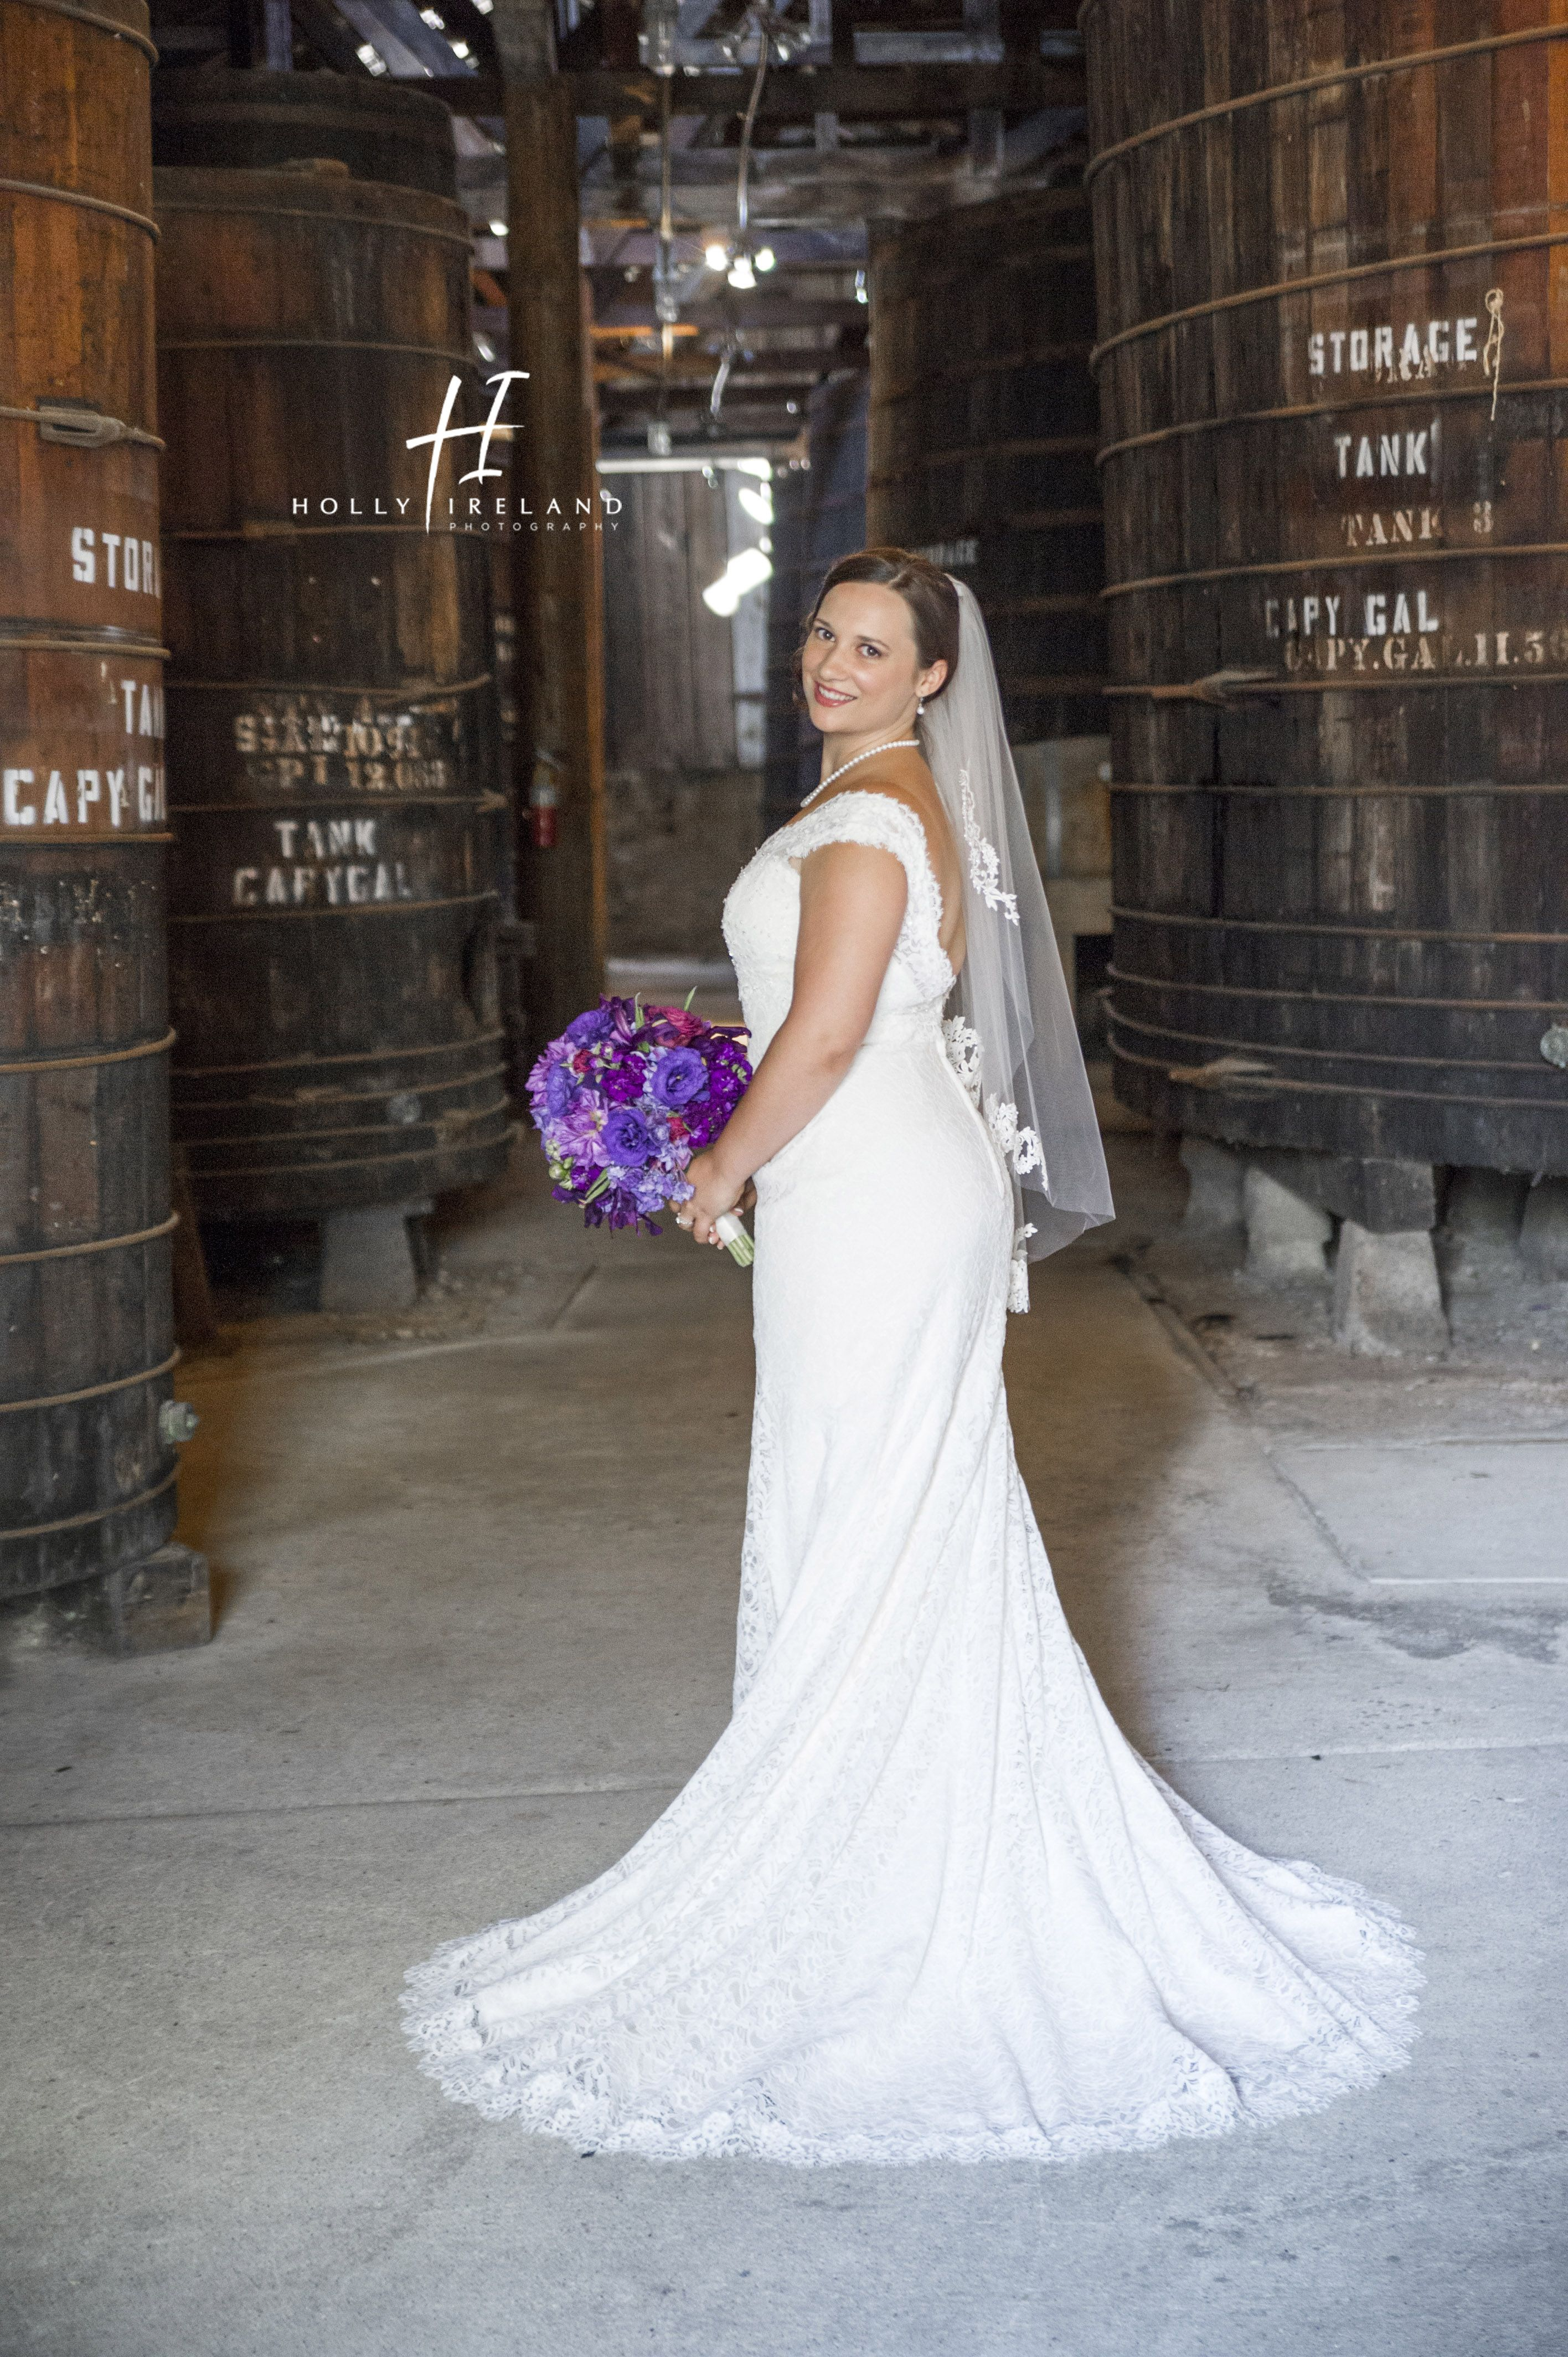 BernardoWinery-Wedding-Photographer8